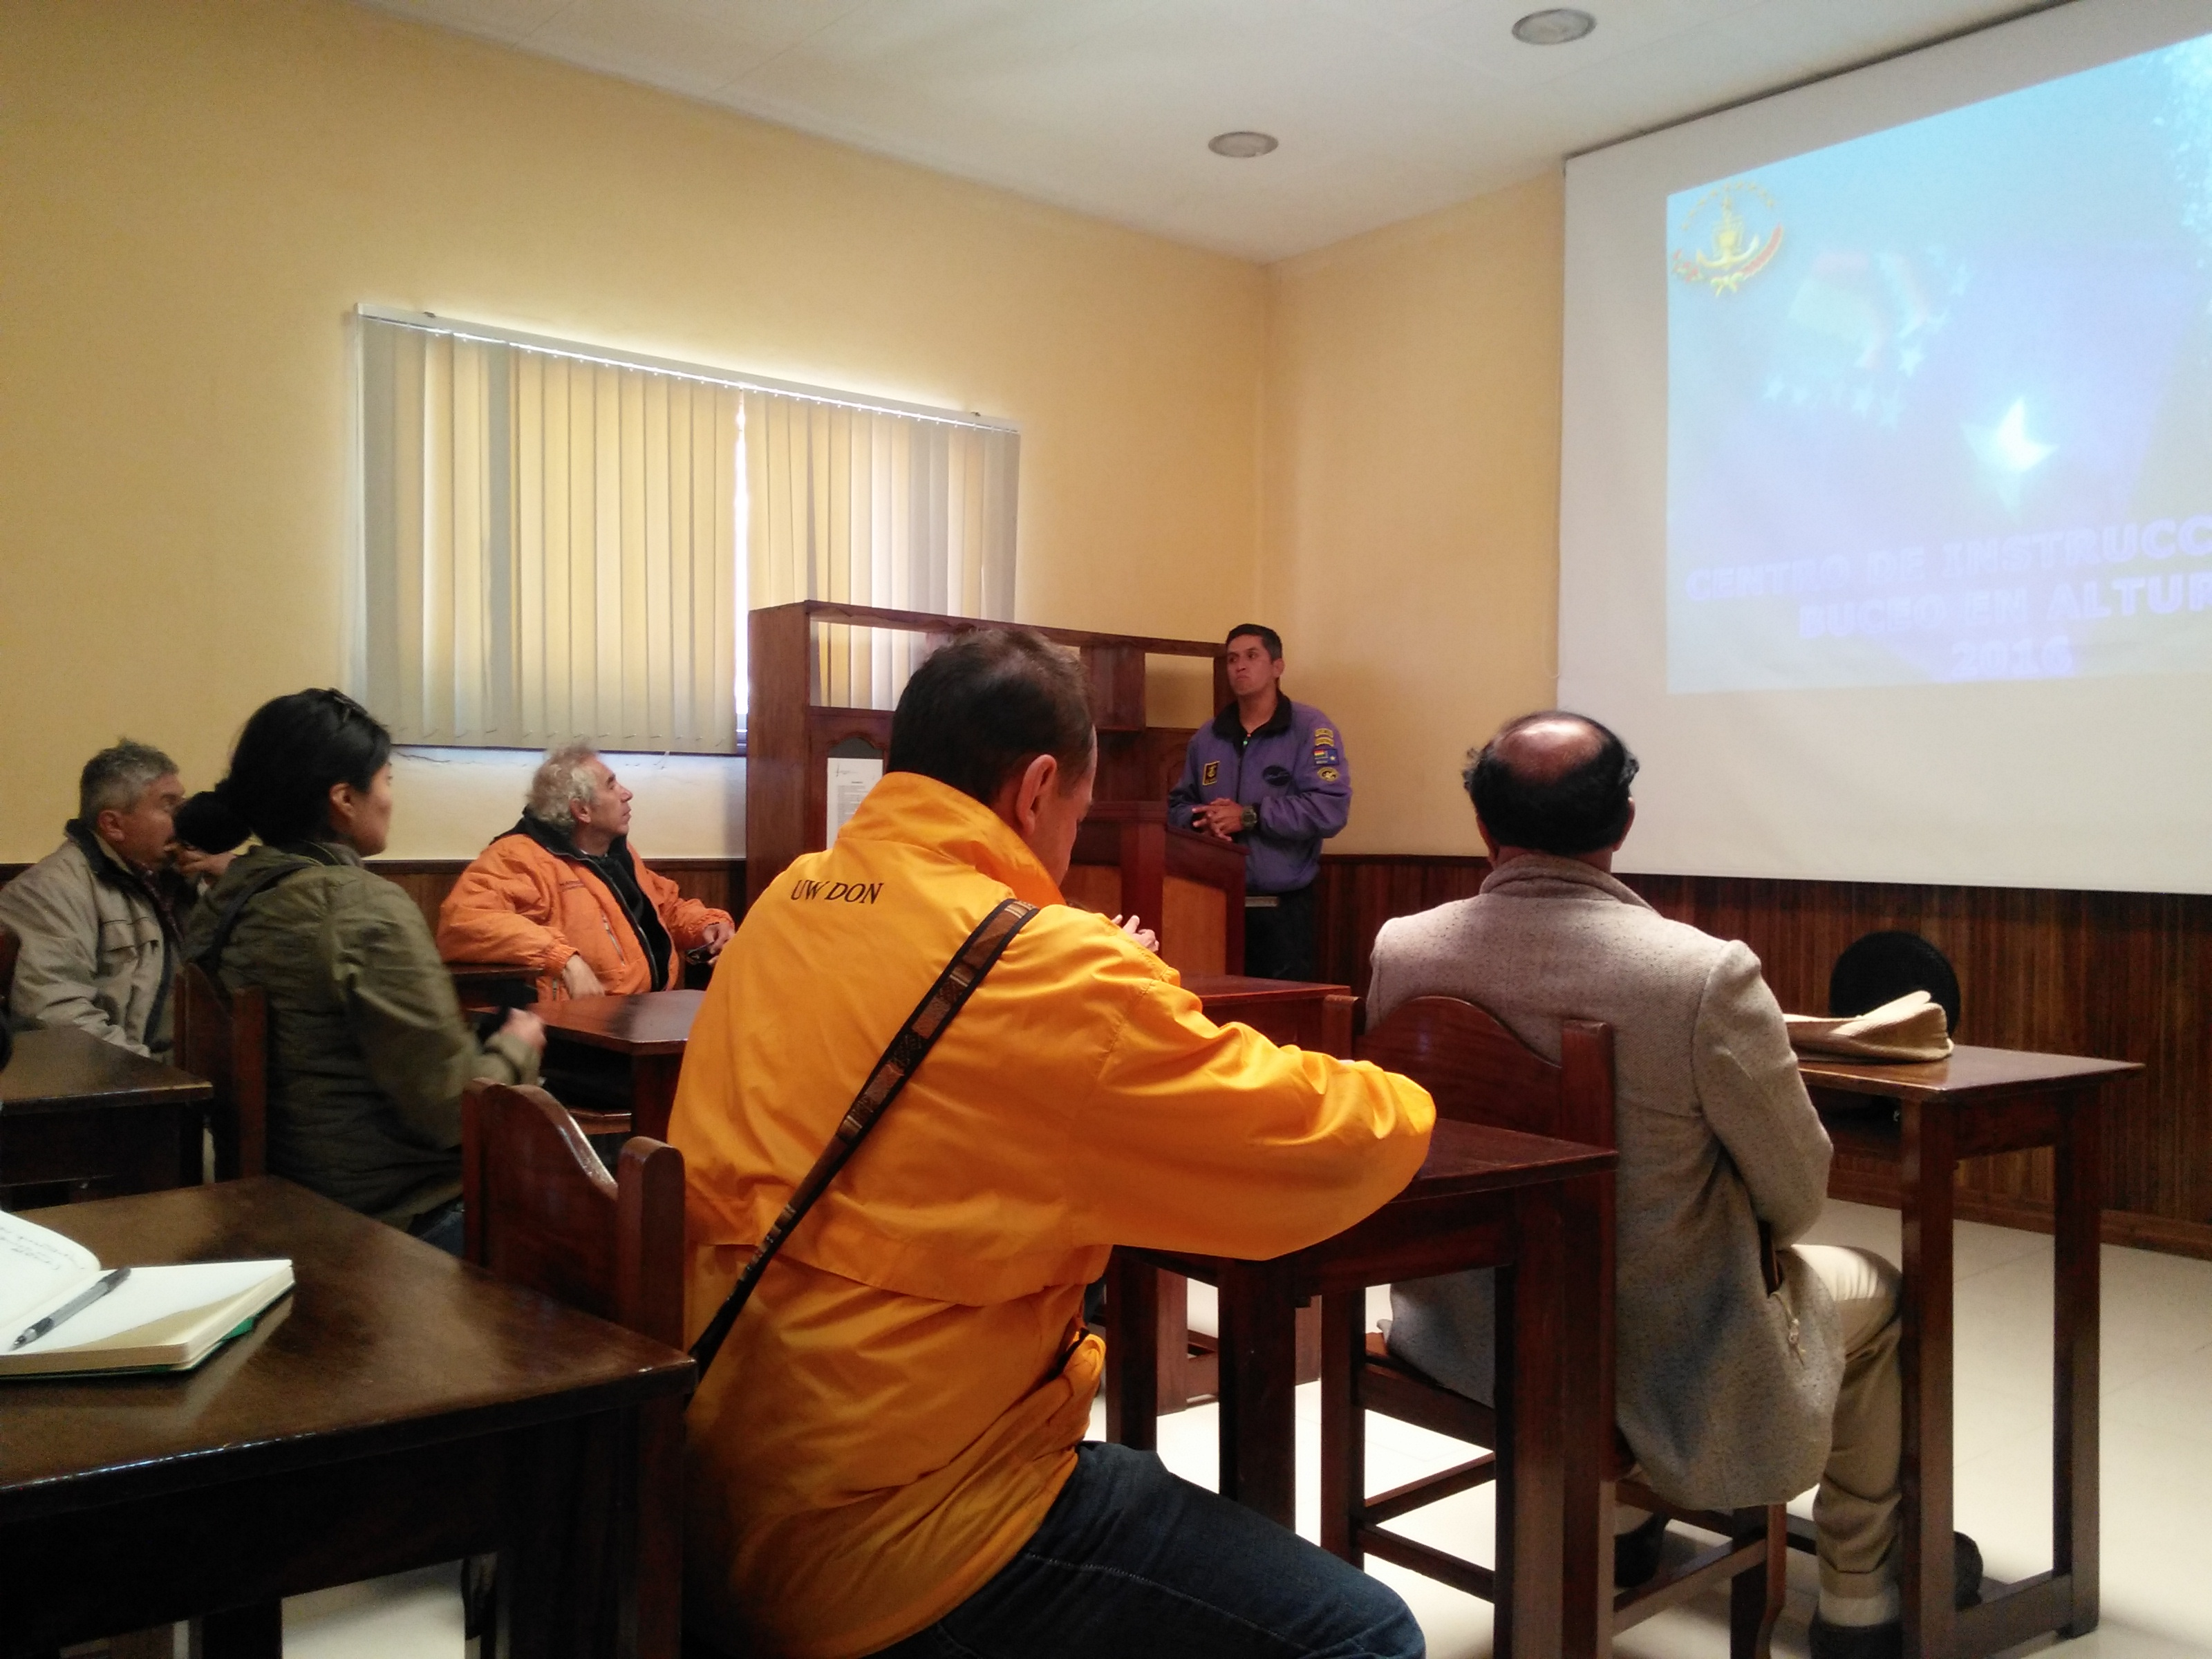 The Commander of the High Altitude Diving Center of the Bolivian Navy givin a talk about their experience.